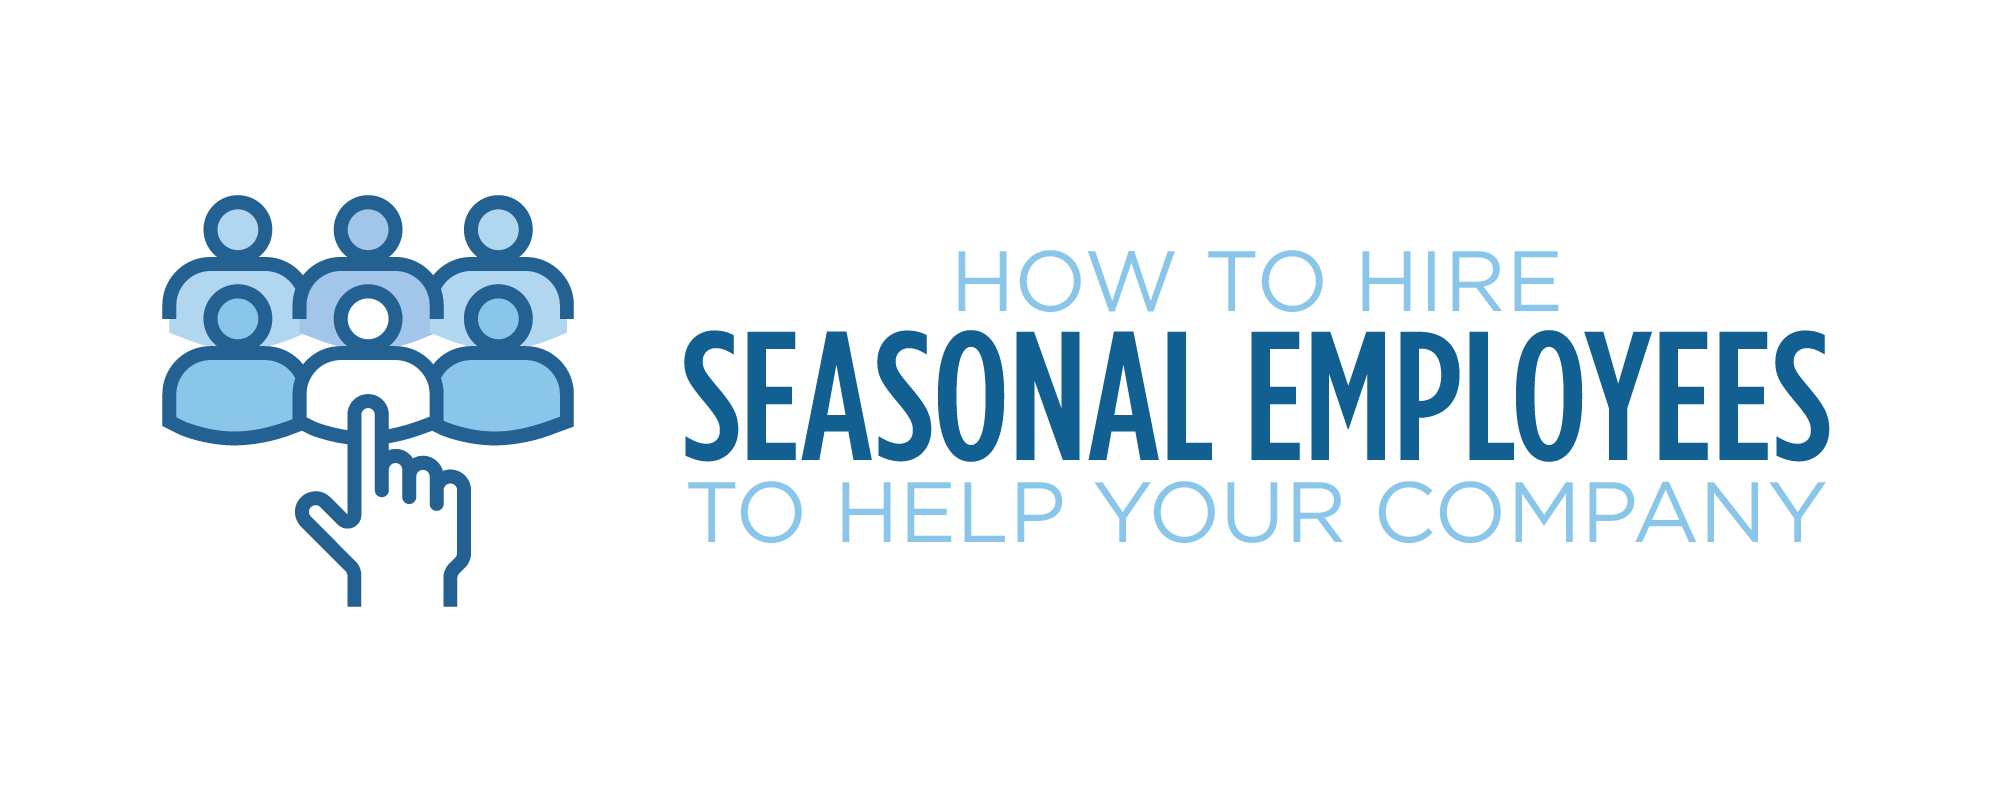 how to hire seasonal employees to help your company